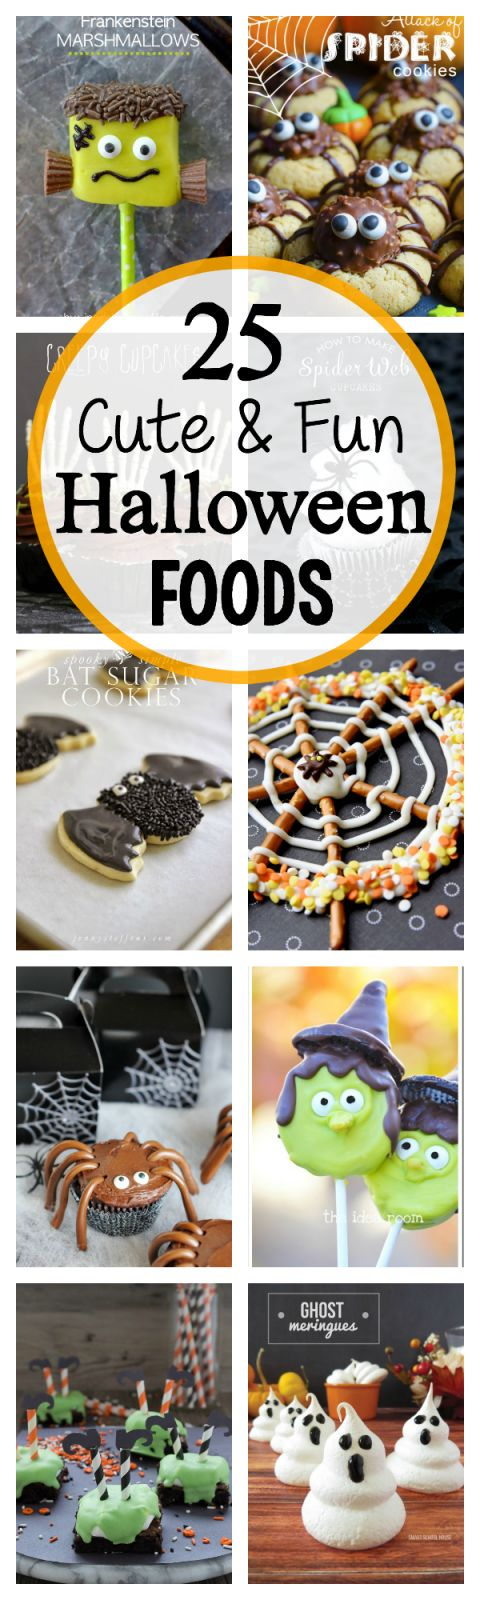 25 Cute and Fun Halloween Food Ideas! great for Halloween parties.